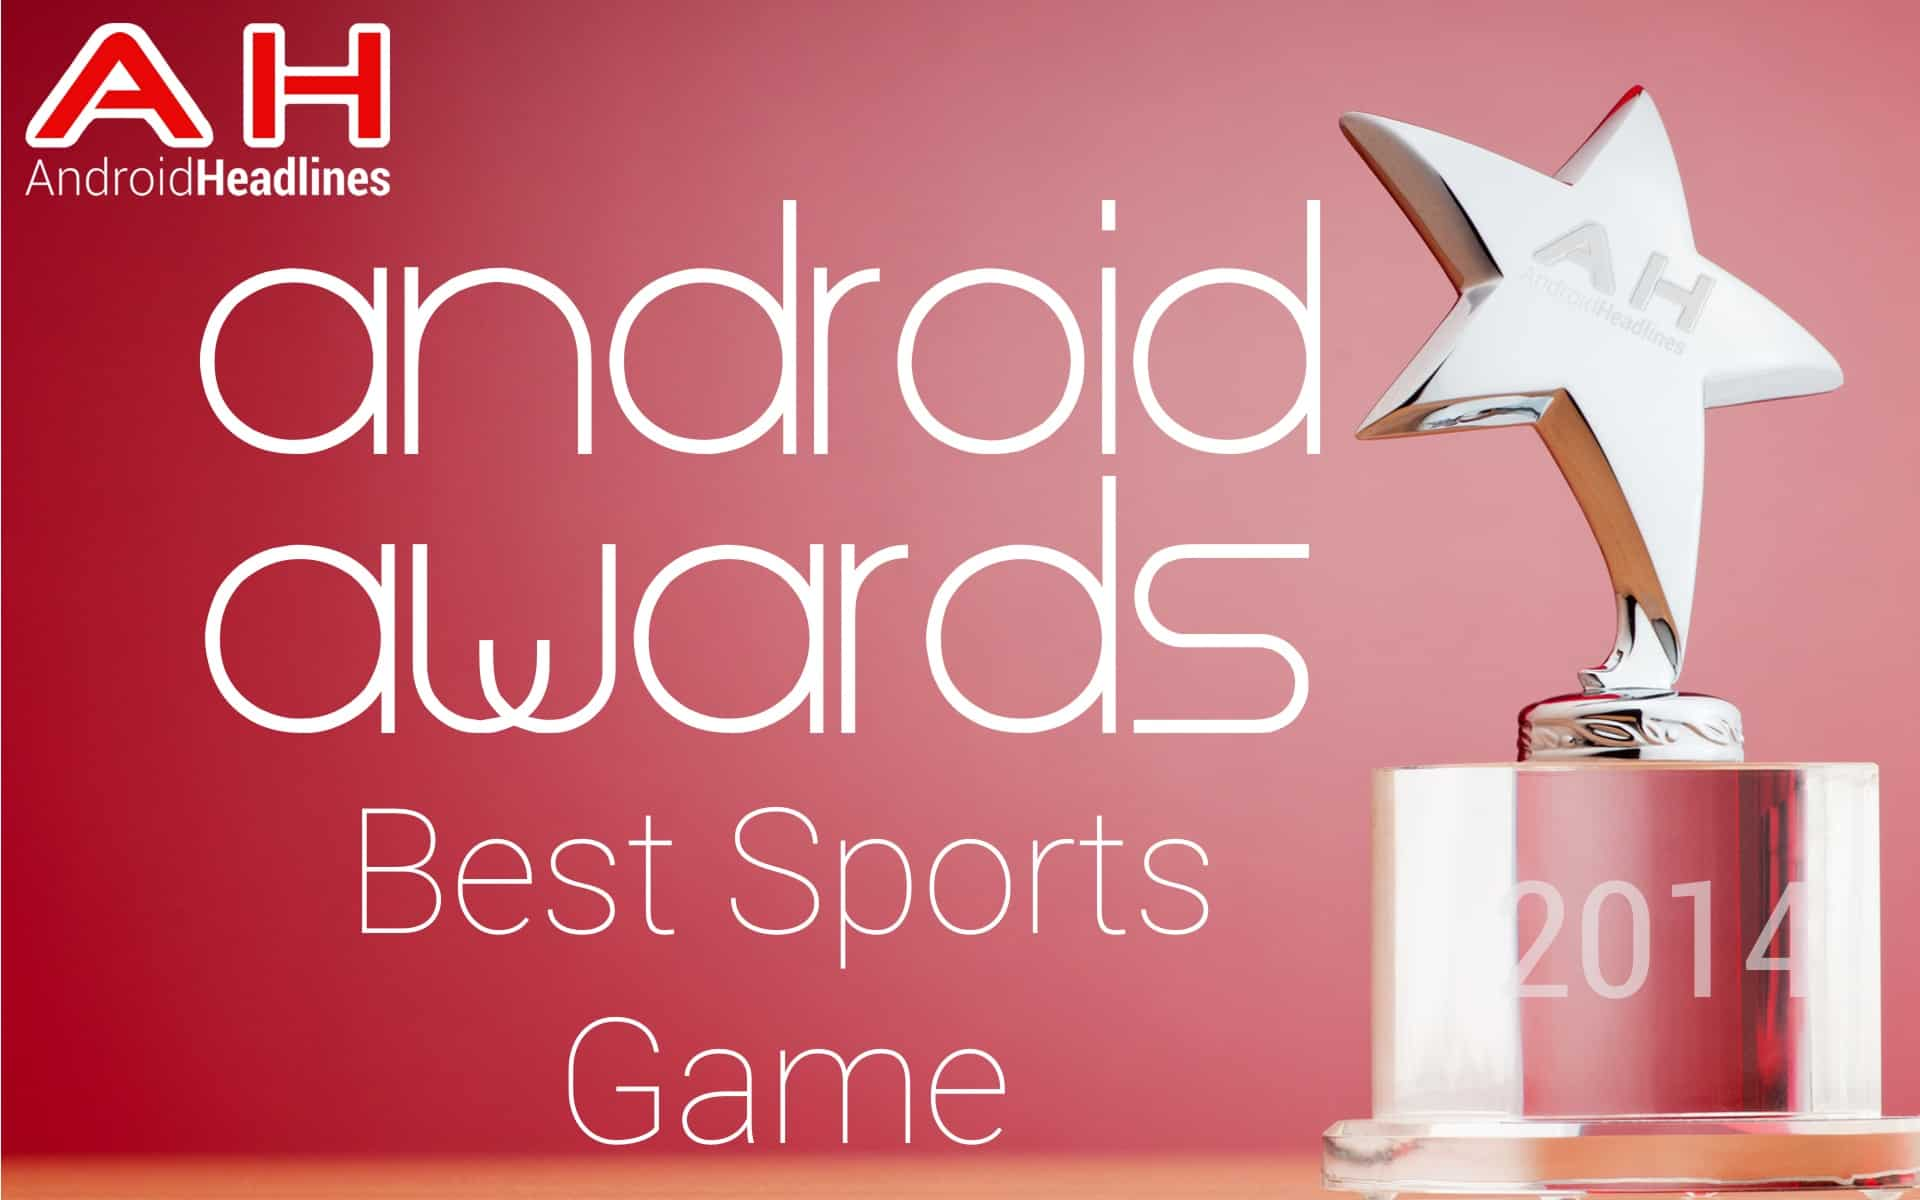 AH Awards 2015 Best Sports Game Android